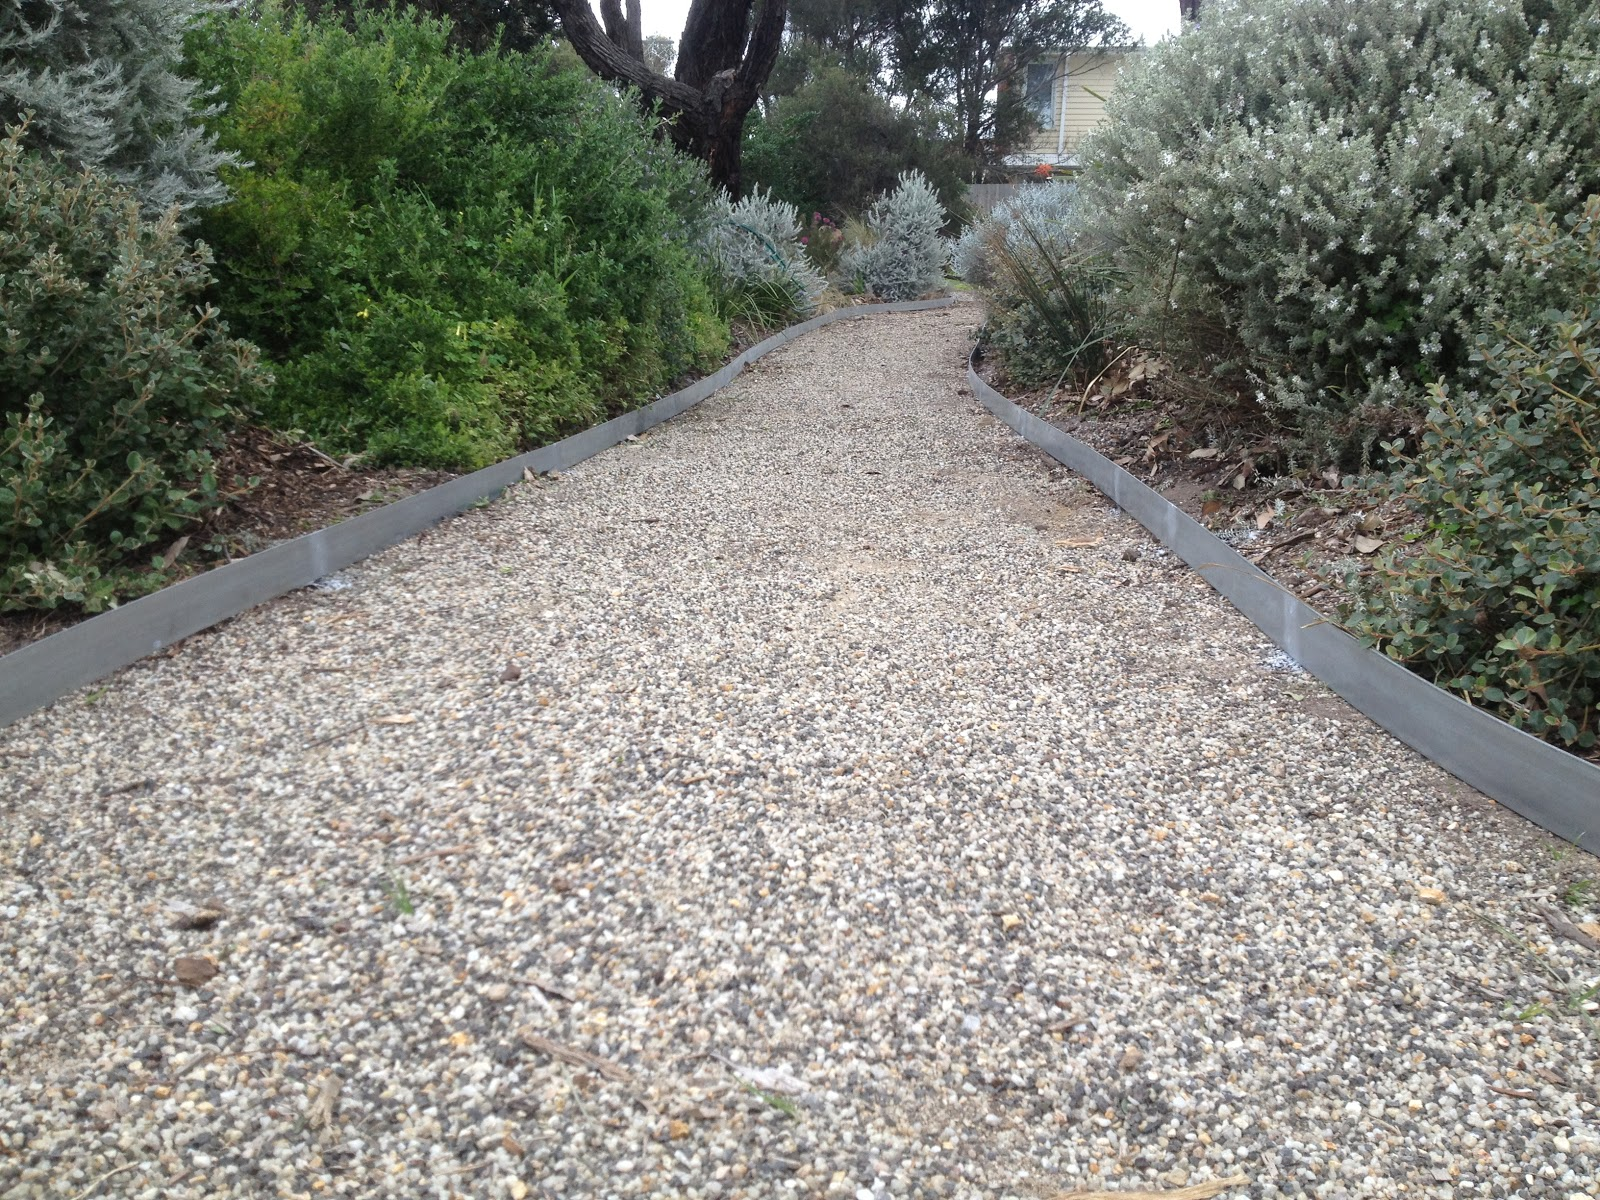 Scorpio landscaping geelong scorpio landscaping geelong for Landscape edging